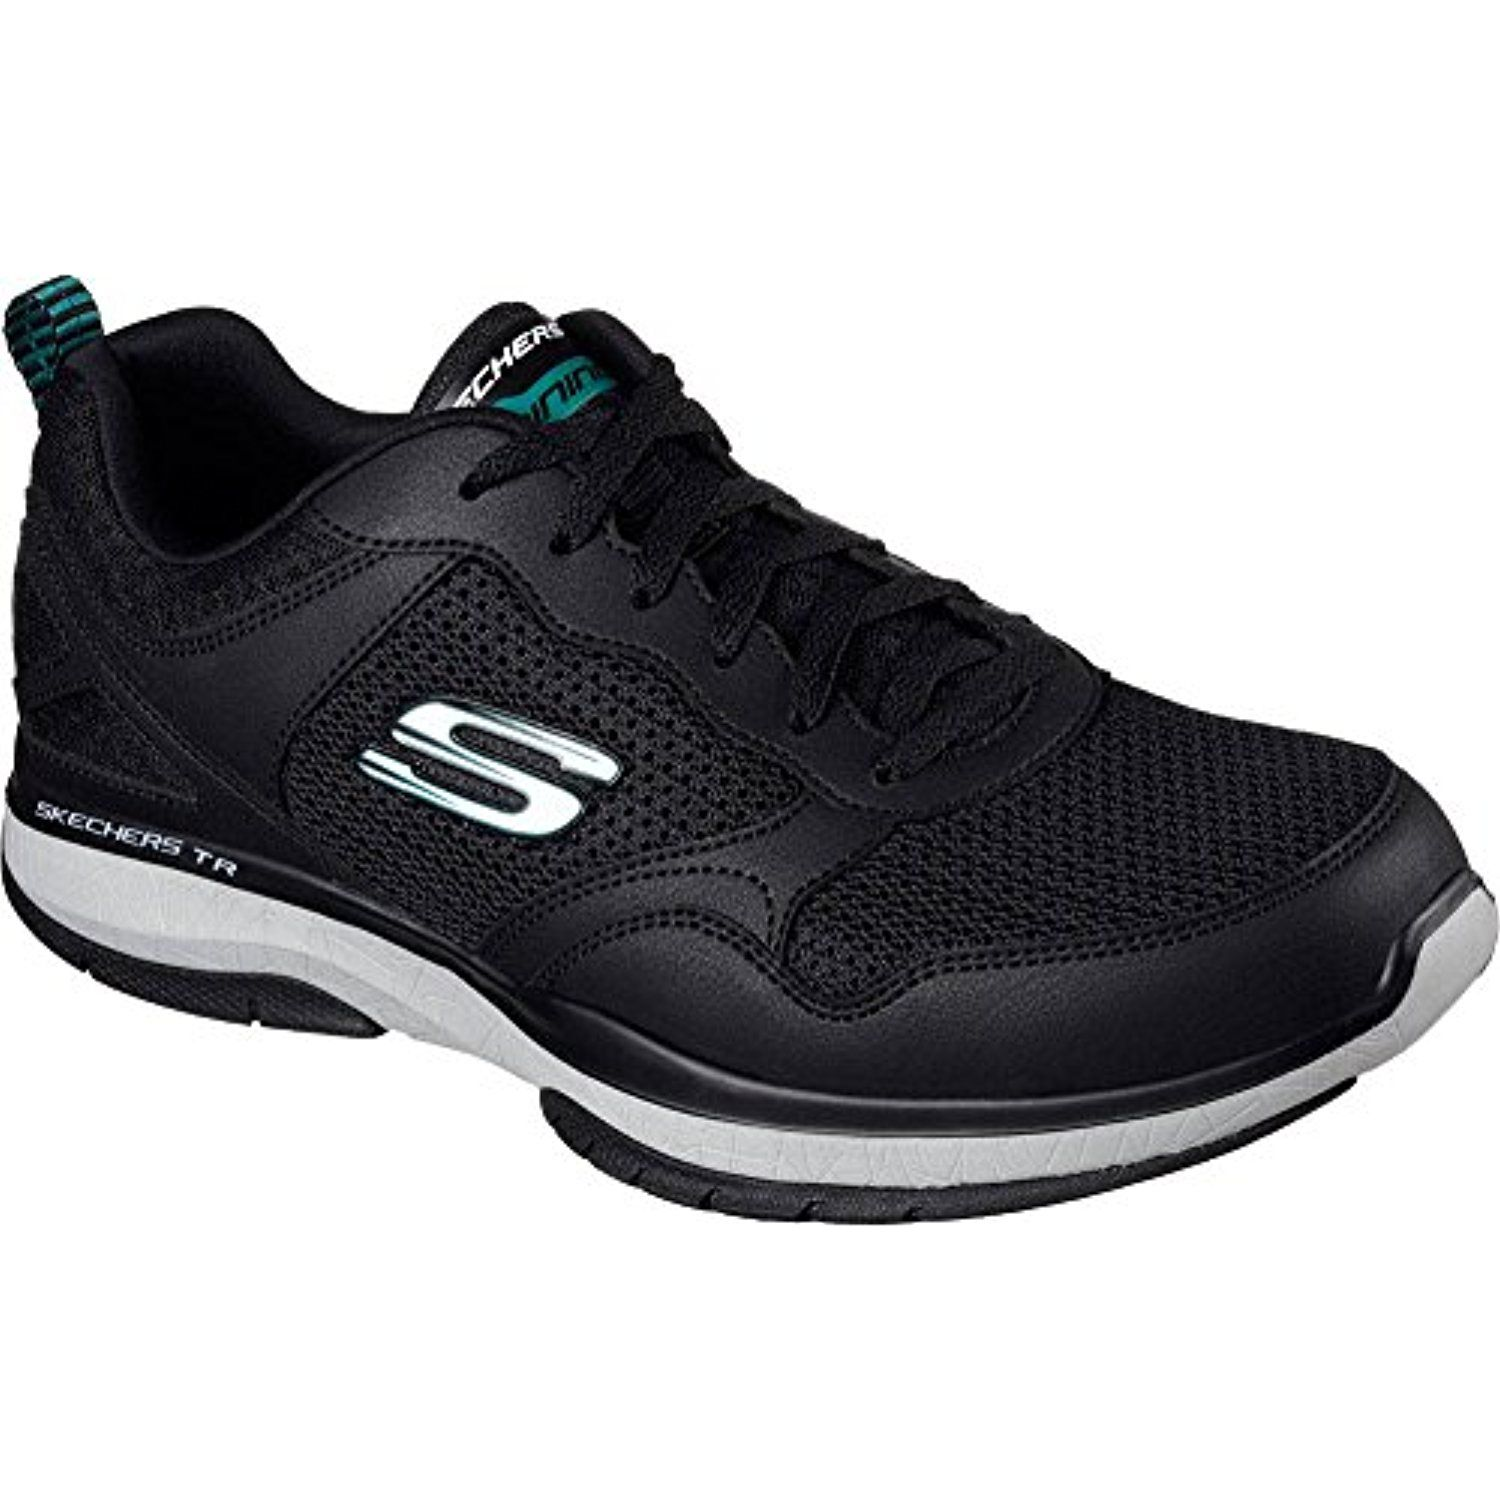 Skechers Men S Burst Tr Halpert Cross Trainer Be Sure To Check Out This Awesome Product This Is An Affiliate Lin Training Sneakers Skechers Racquet Sports